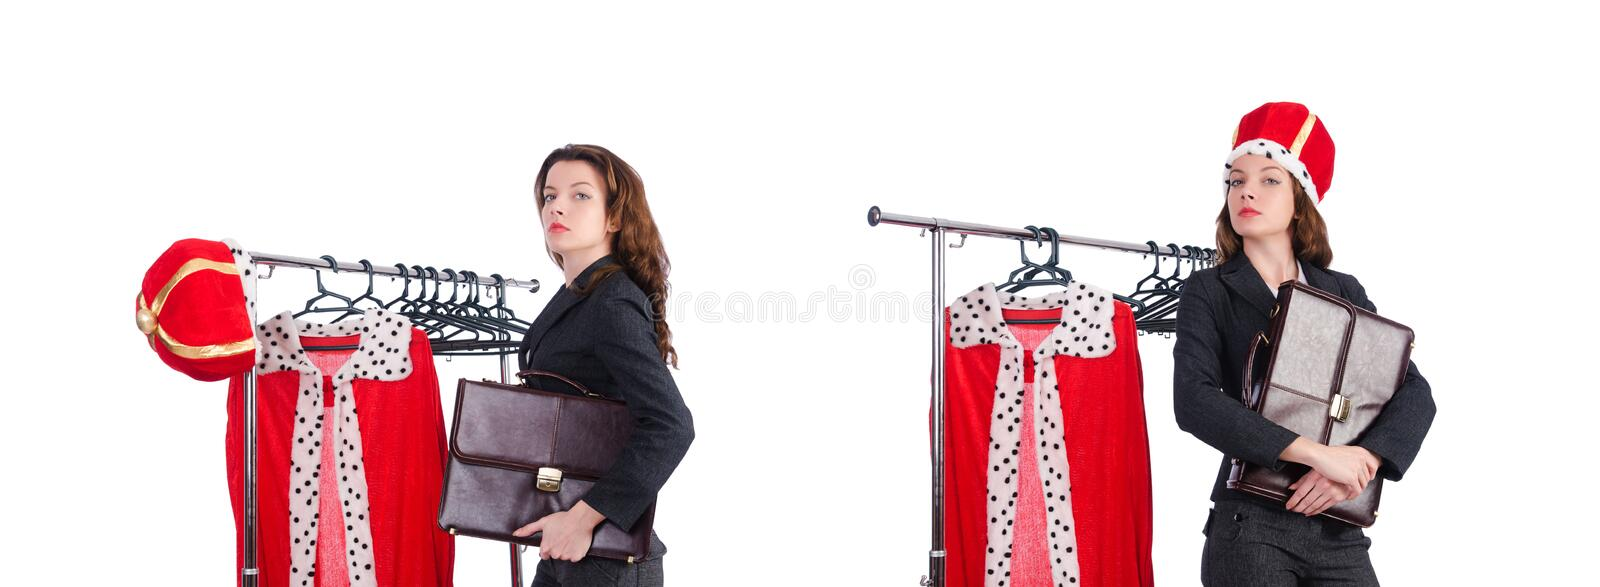 Woman queen in funny concept. The woman queen in funny concept stock images